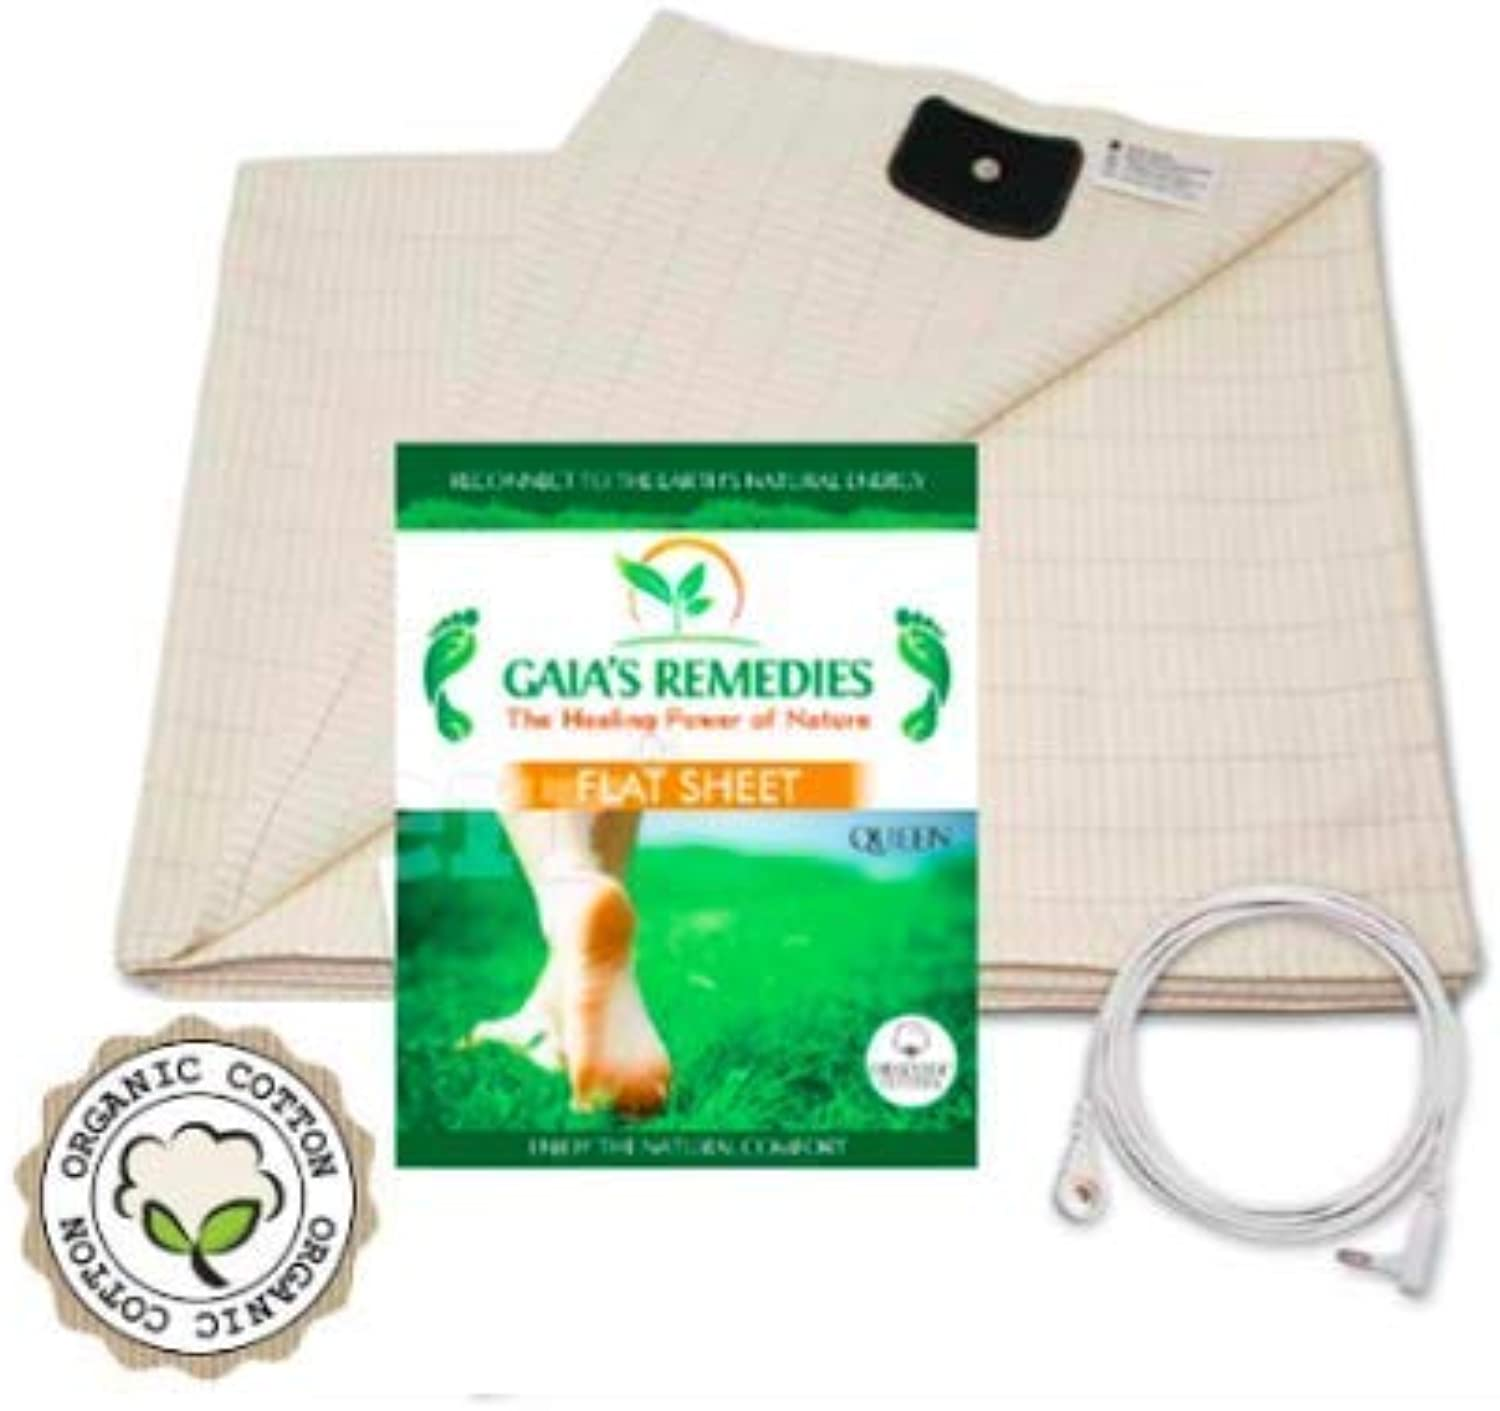 Earthing Grounding FULL Size (60 x 88) Flat Sheet - 95% Organic Cotton, 5% Silver Thread for EMF Predection, Antioxidants, Ion Exchange, Inflammation, Better Sleep, Reduced Pain.